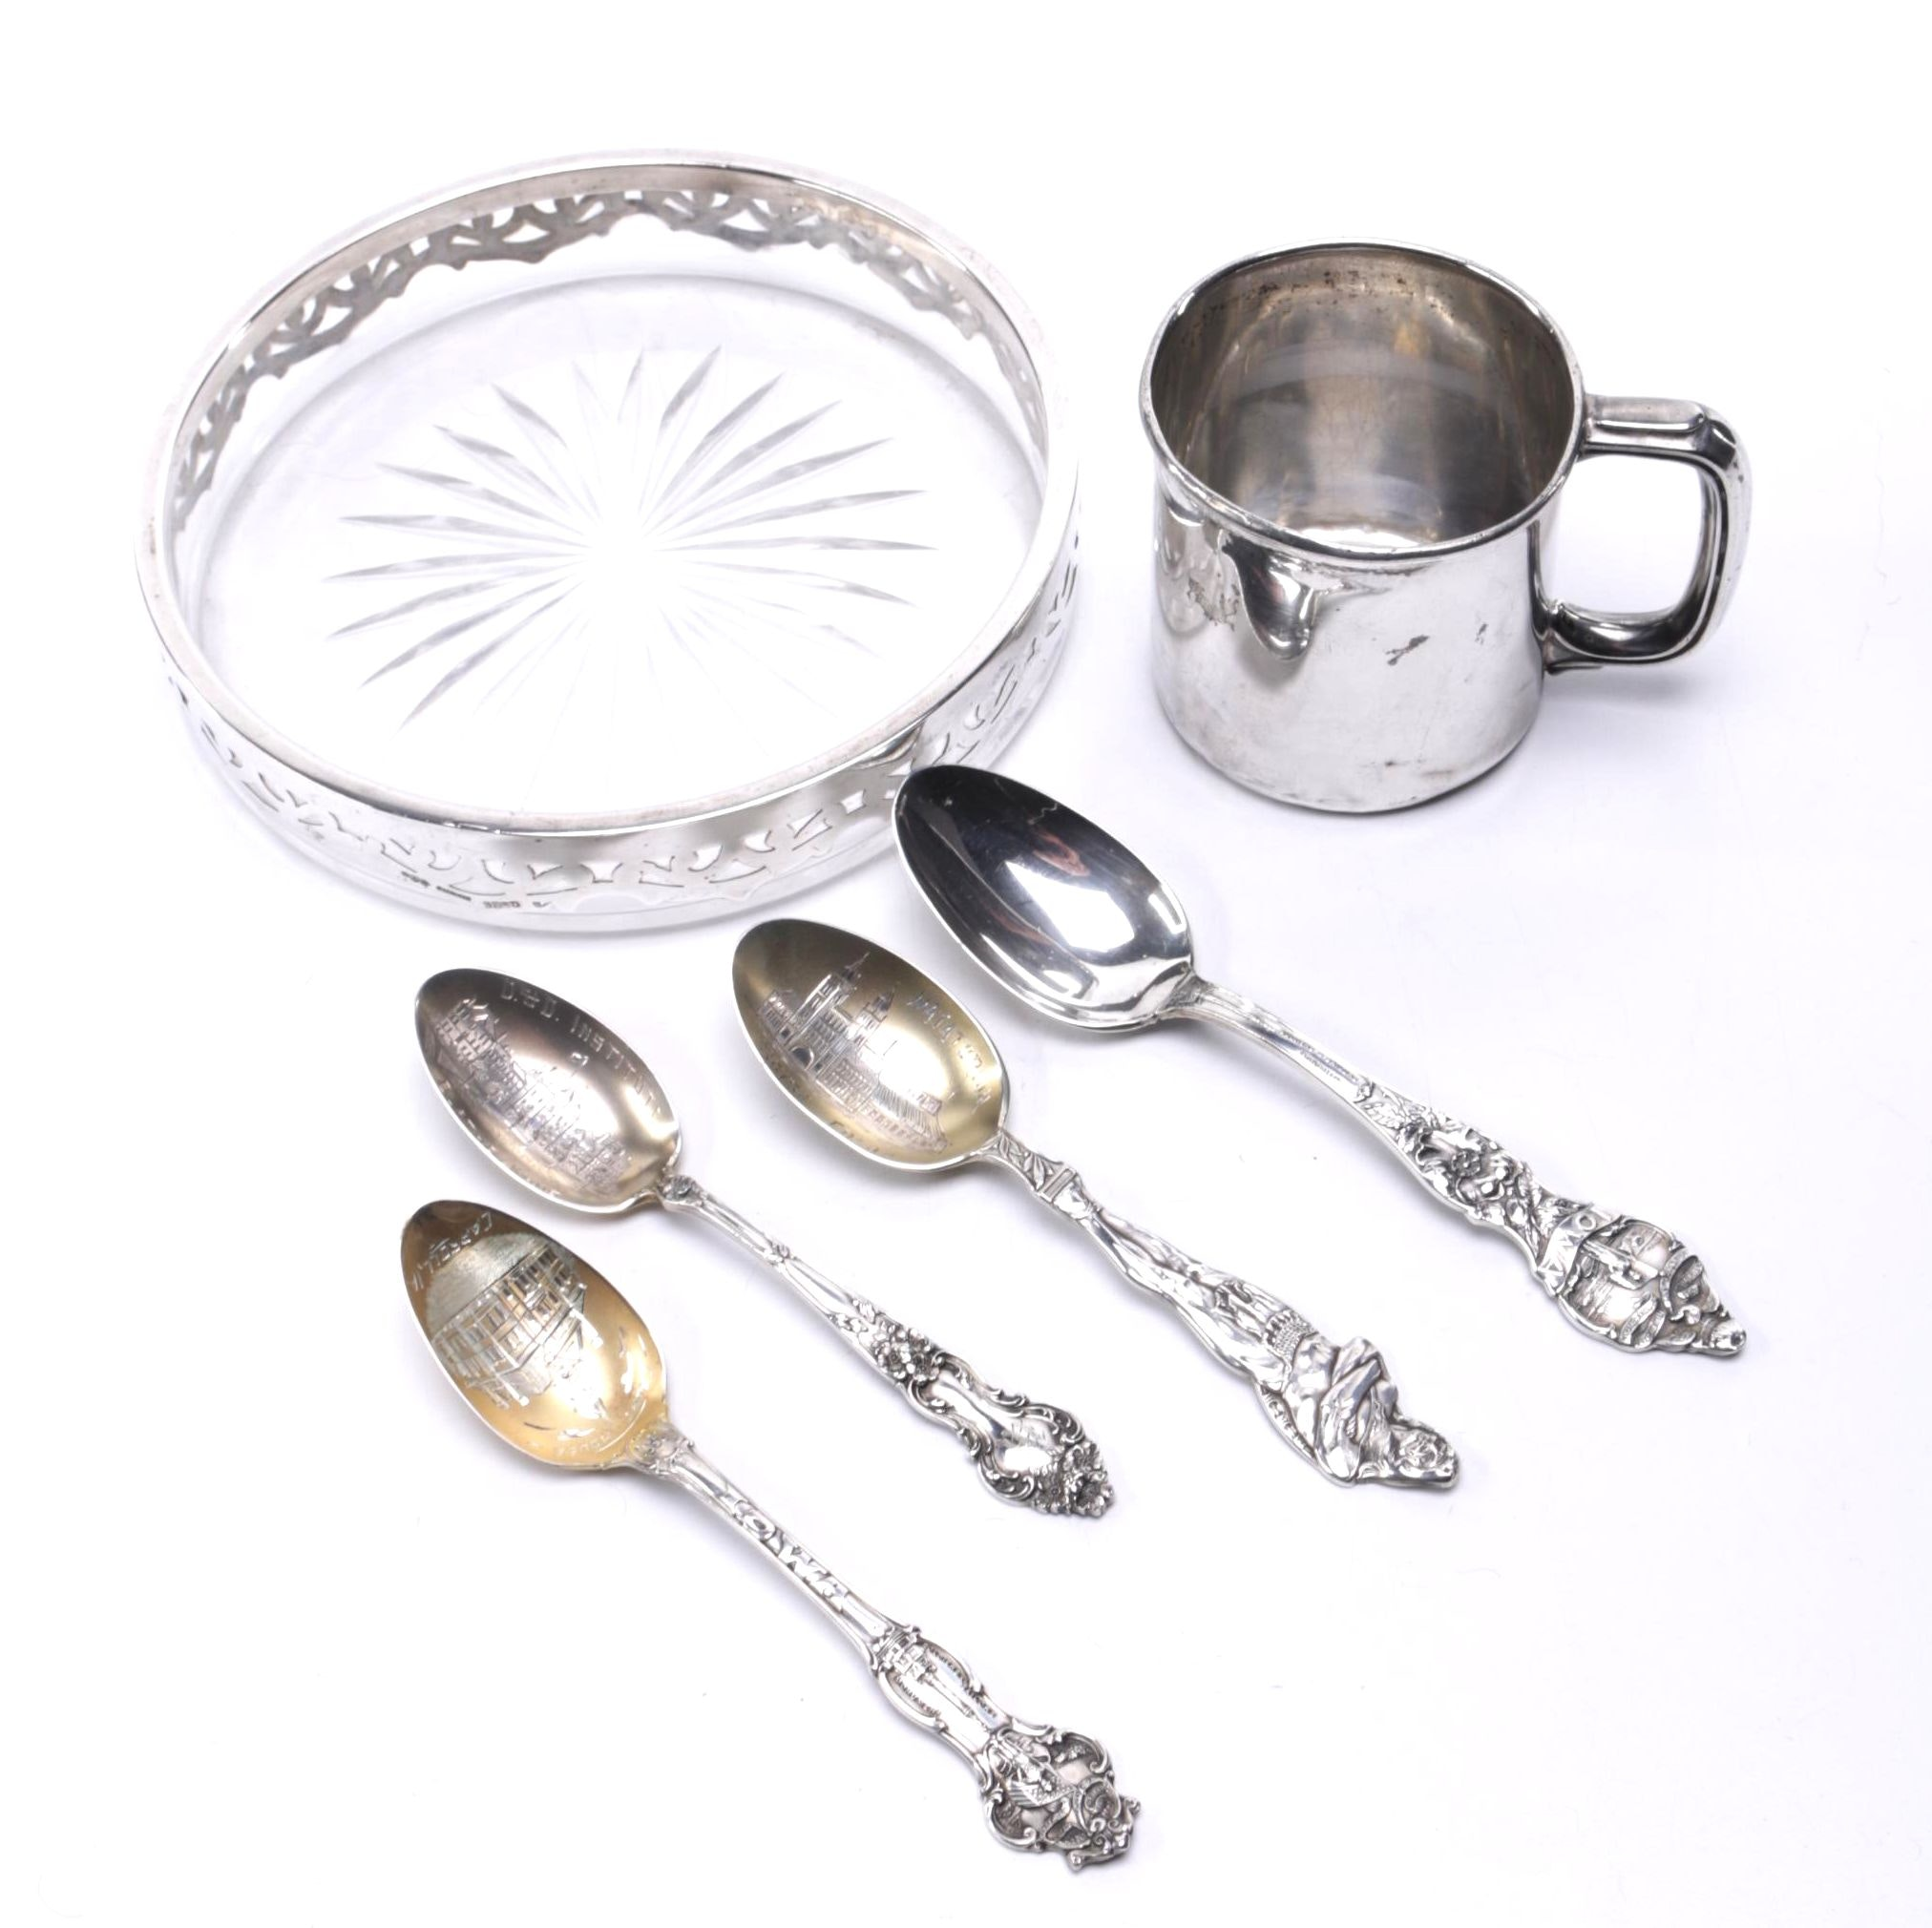 American Sterling Silver Tableware Feature Gorham